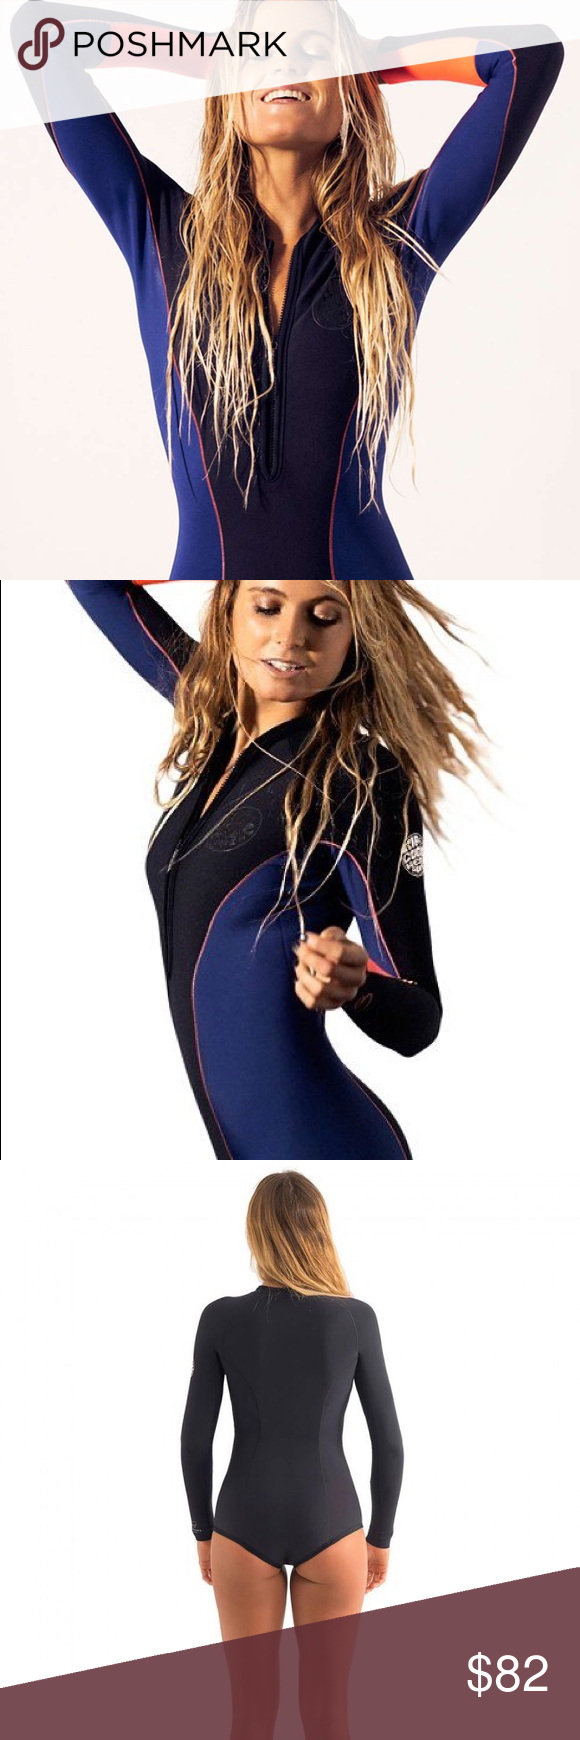 1mm Women's RipCurl G-BOMB L/S Booty Springsuit Rip Curl's G-BOMB women's front-zip springsuits are where style and performance converge. Sexy, young, and super high performance design and materials allow you to look your best in the water and perform to the best of your abilities. Made of 100% stretch E4 neoprene with action panels for superior comfort and maneuverability. This suit also features durable and high-stretch flatlock seams, a strong front zip closure, and a stash pocket for…